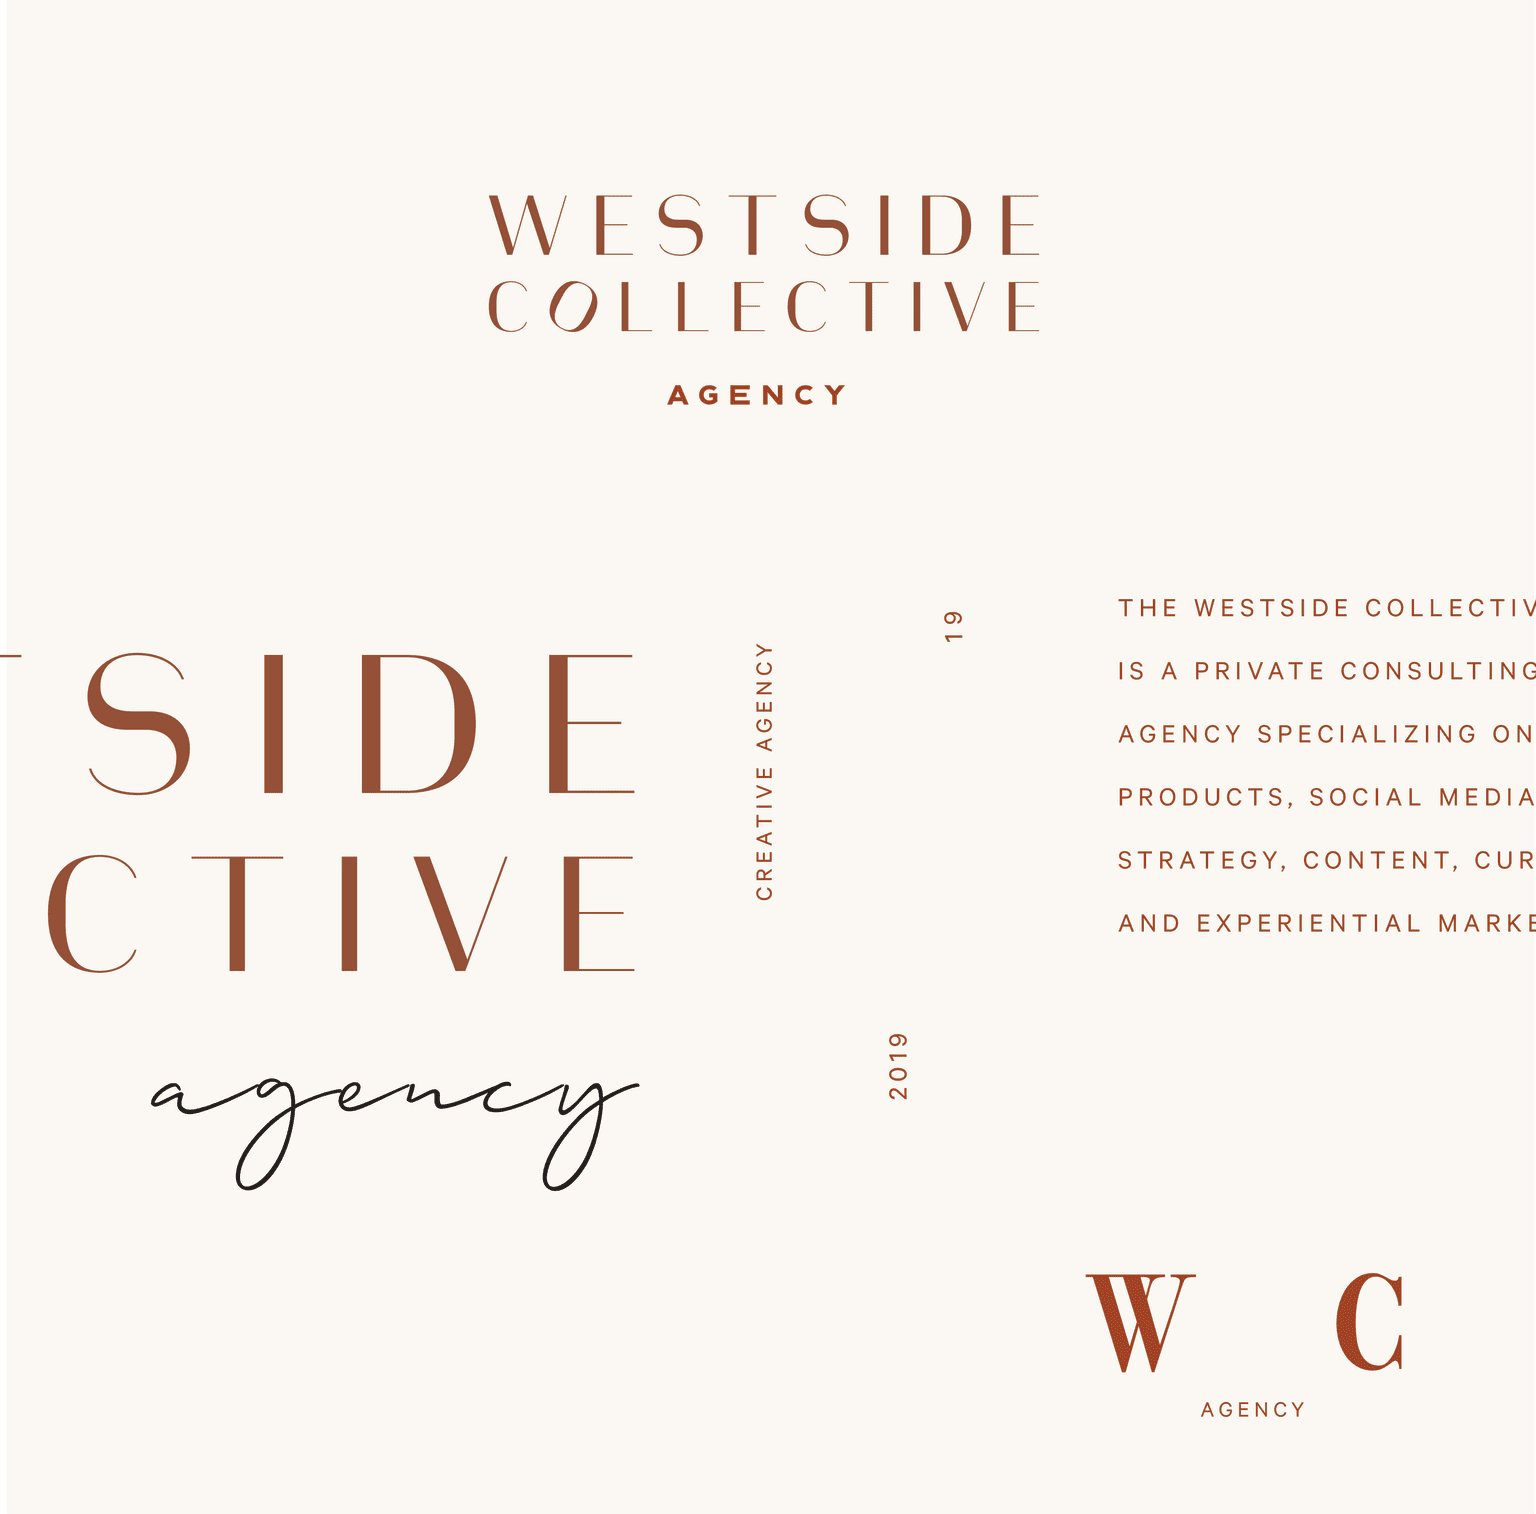 Westside Collective Agency